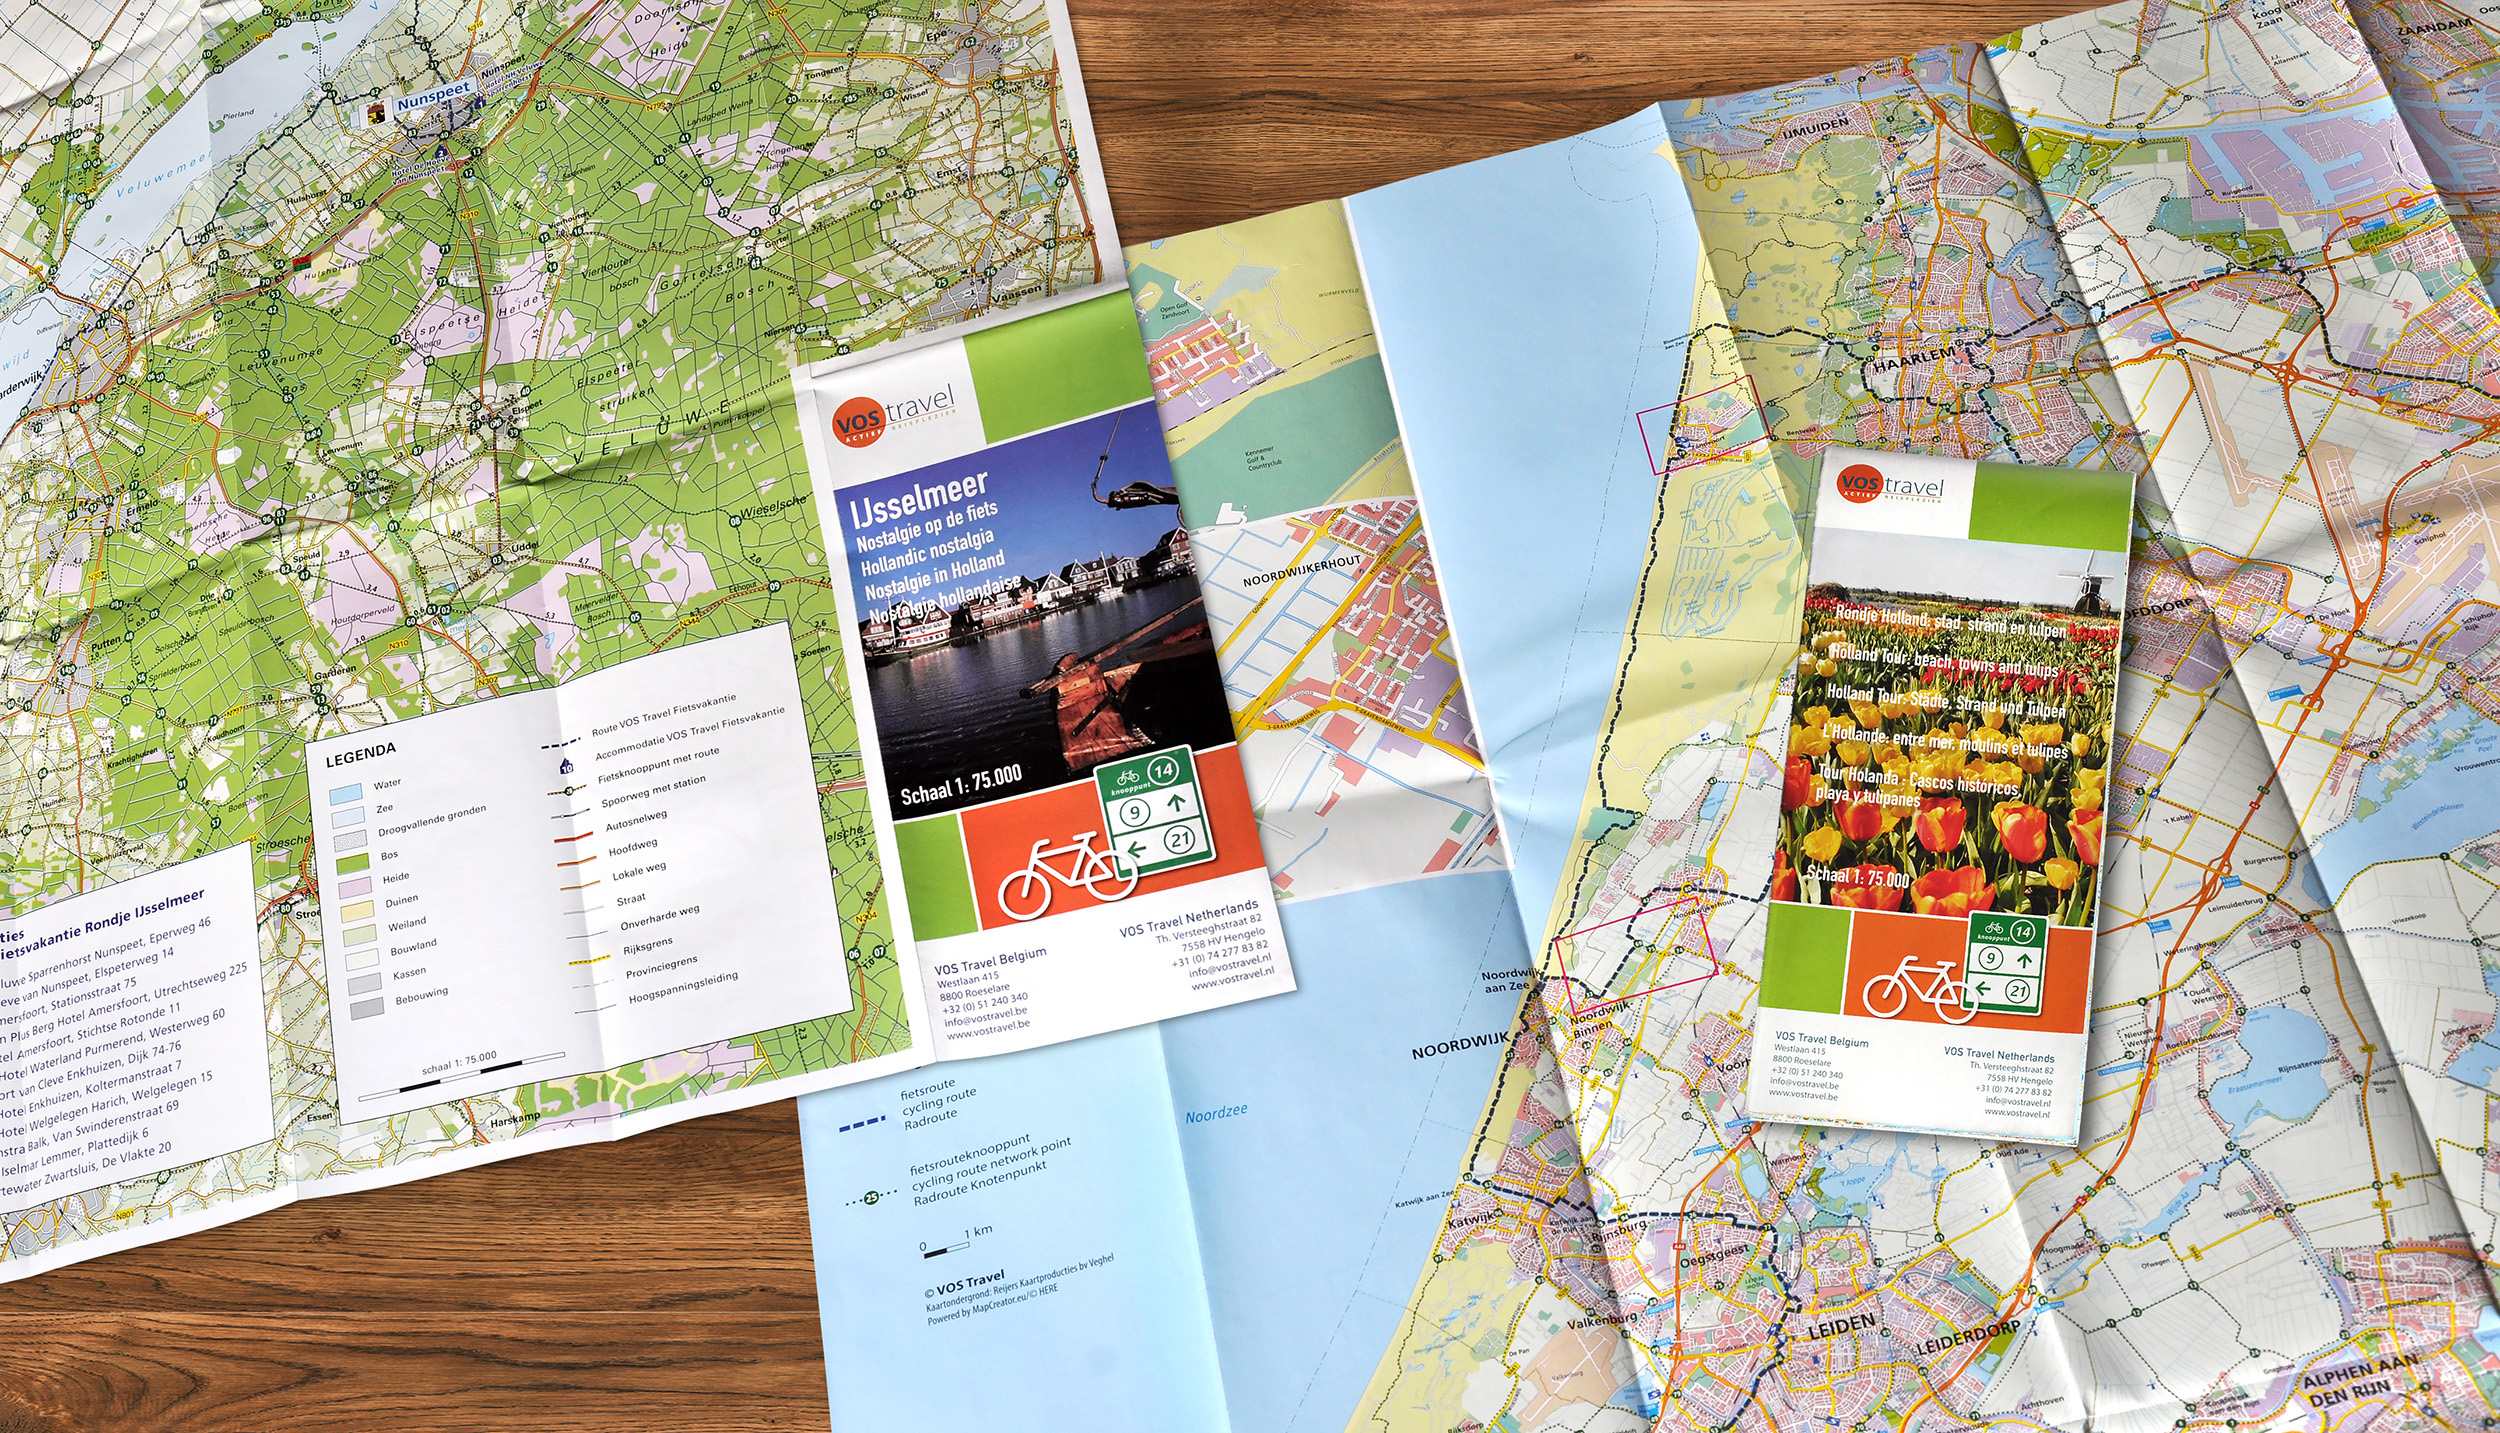 Reijers_Kaartproducties_Kaartmakers_Cartografie_Nederland_landkaart_VosTravel_covers